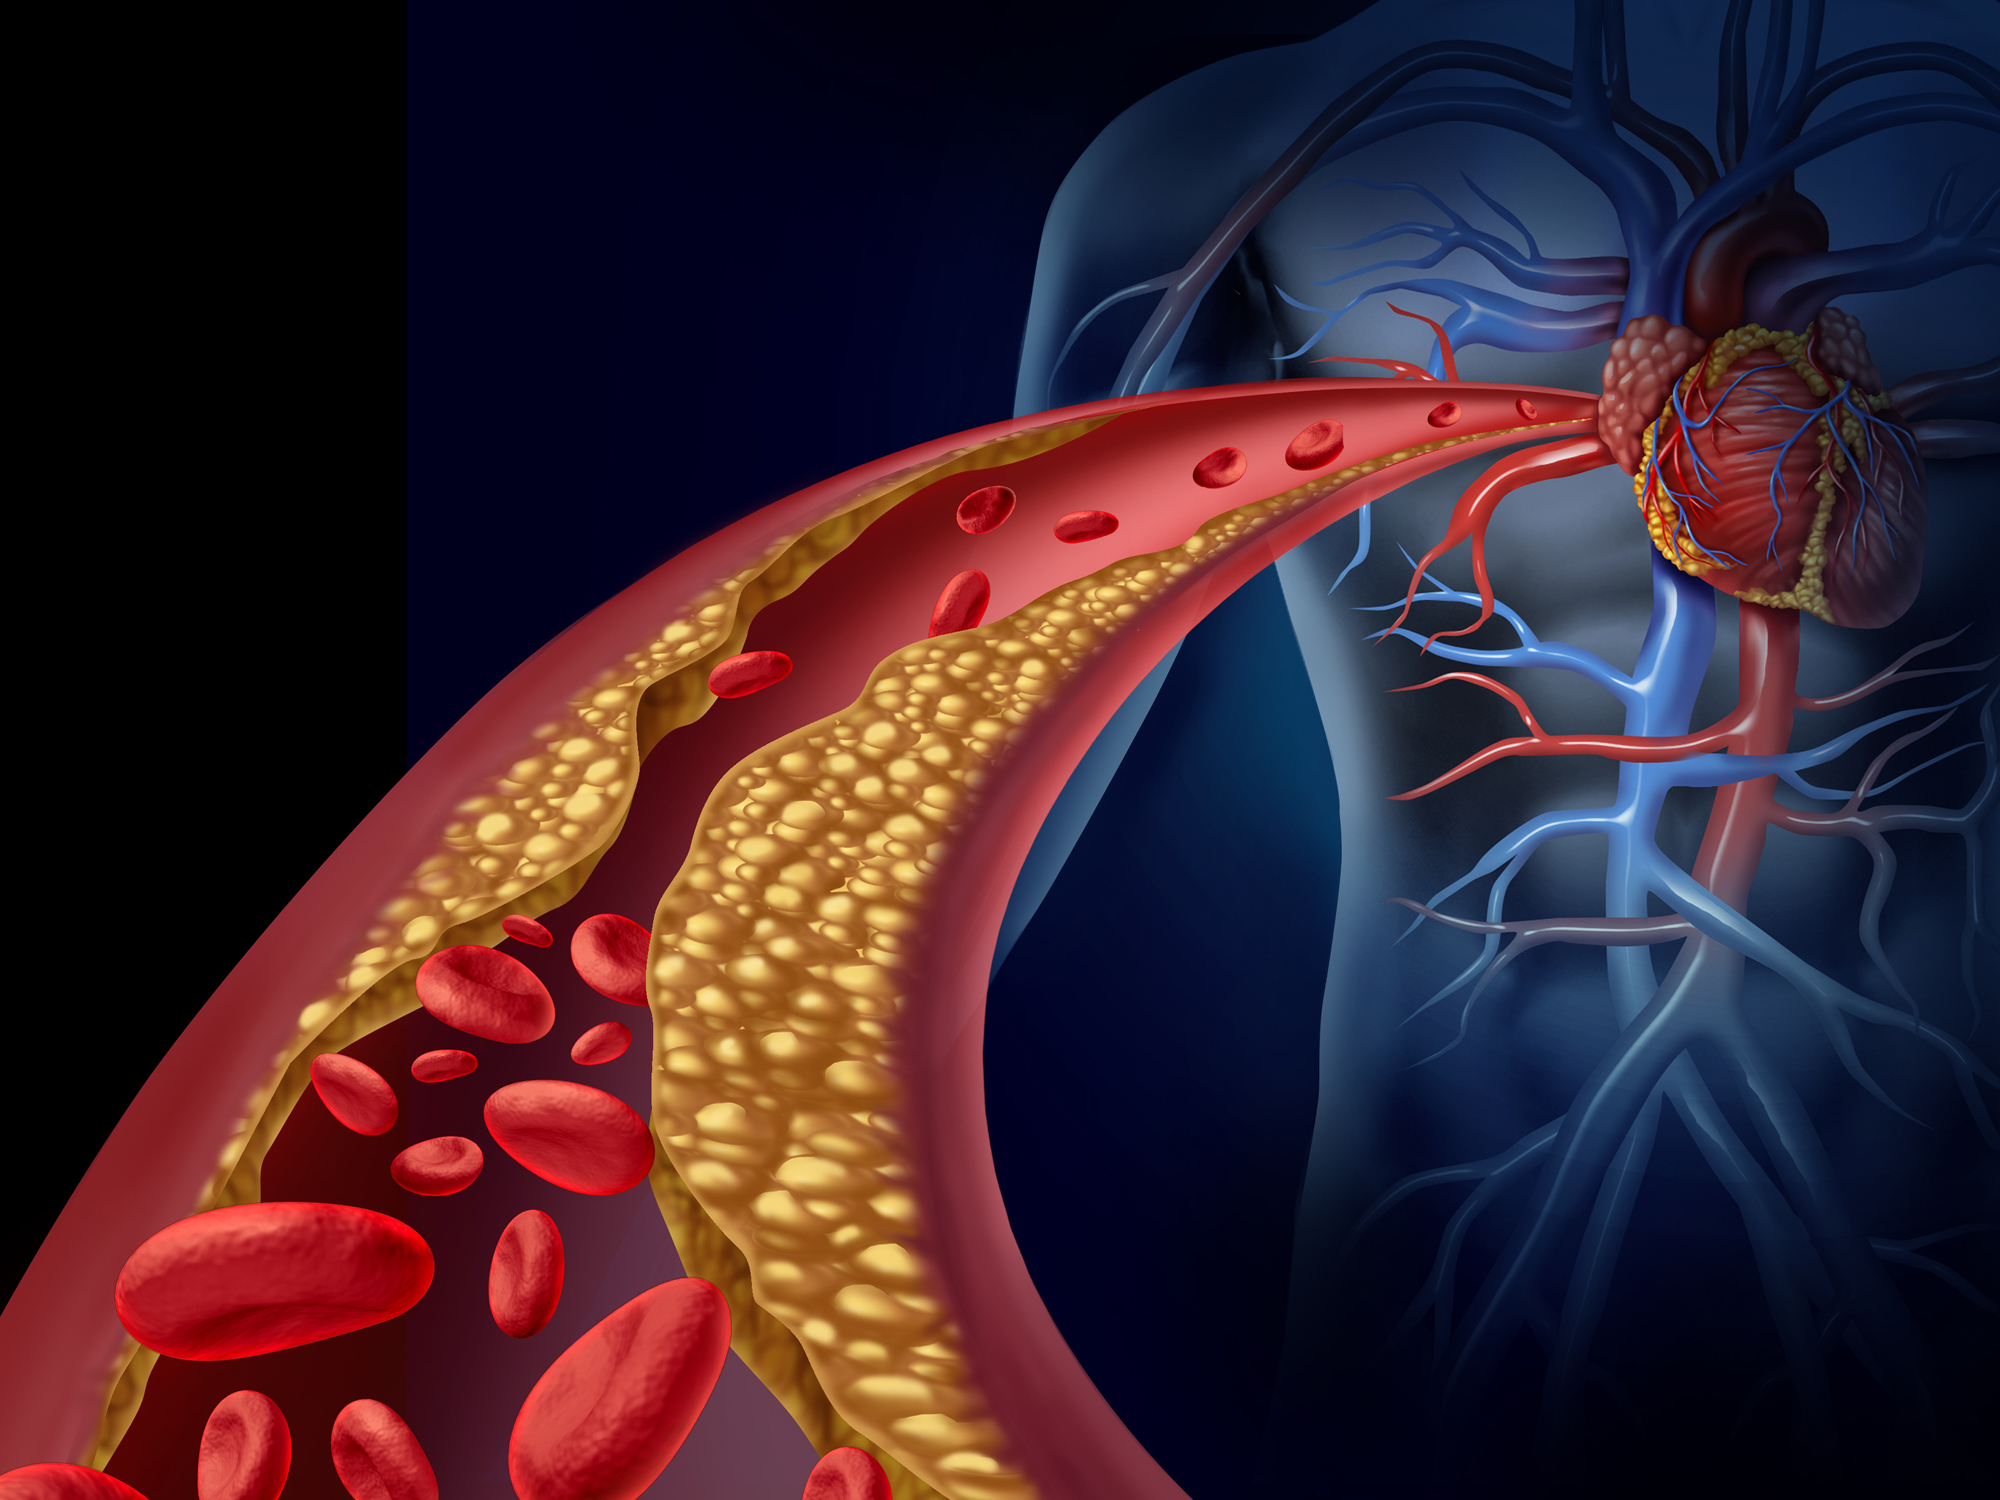 Cholesterol and heart disease: Prepare to be mind-blown